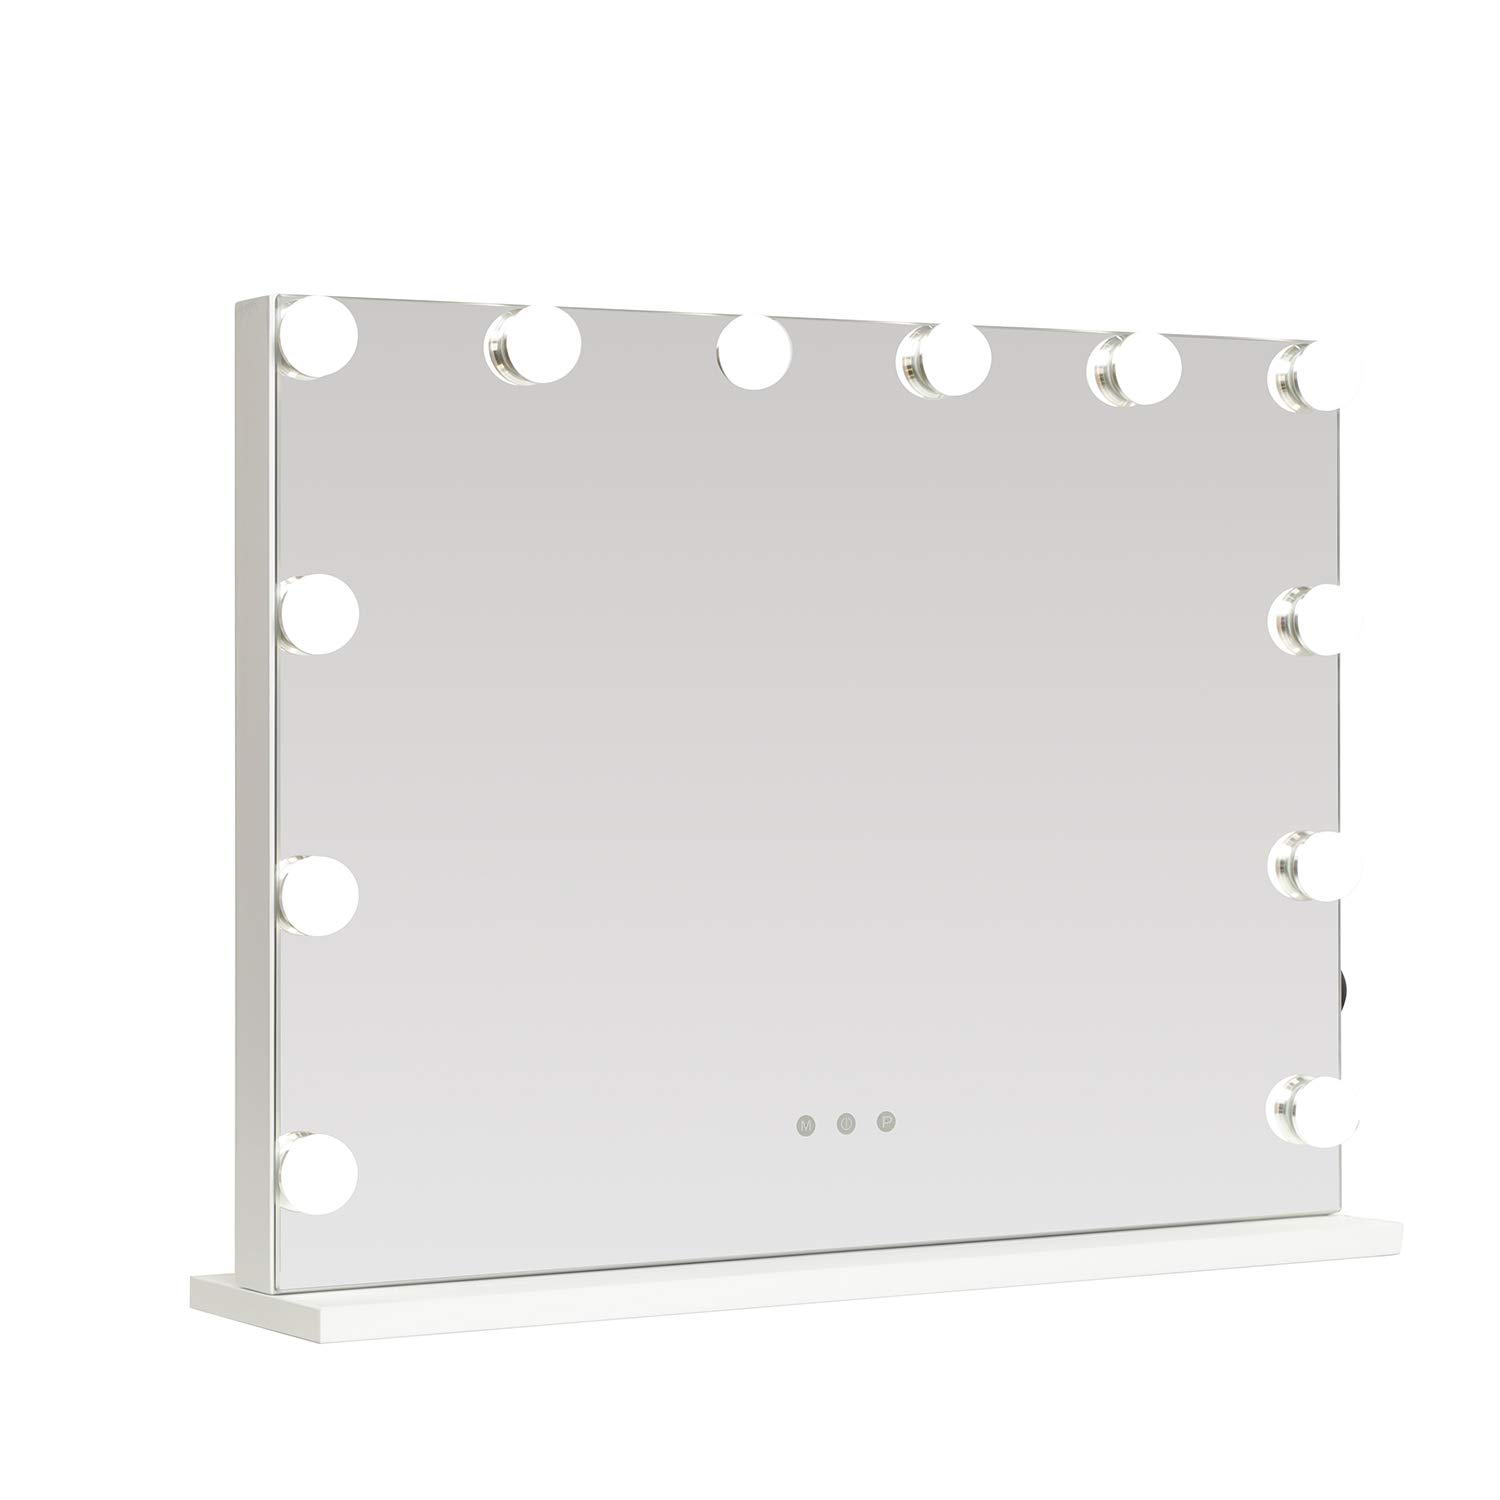 WAYKING Lighted Makeup Mirror with Lights, 1st Generation Hollywood Vanity Mirror with 12 Built-in LED Bulbs, USB Charging Ports L22.83 x H18.11 White